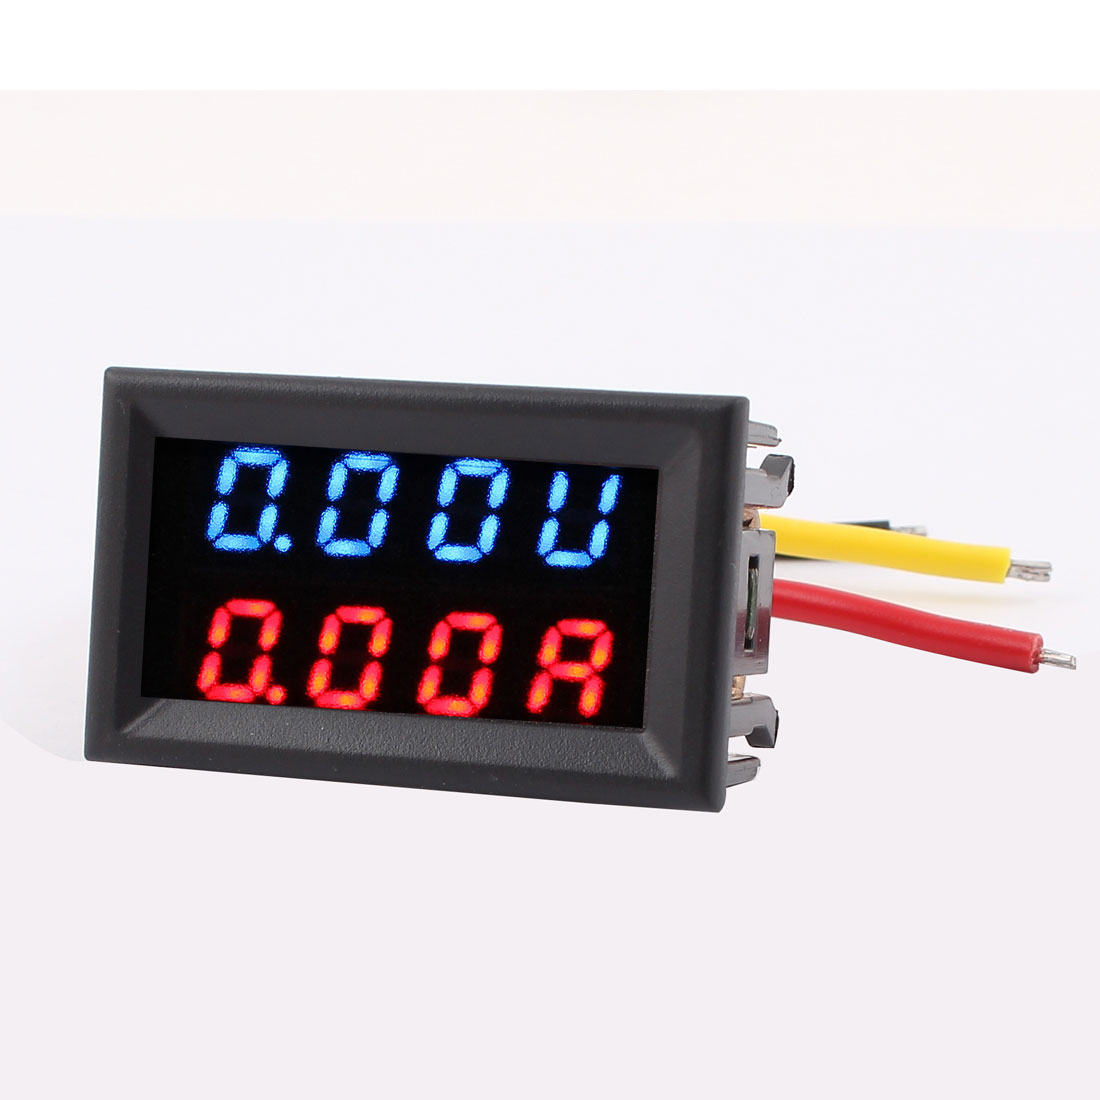 DC 0-300V 0-20A Mobile Battery Tester Dual LED Digital Voltage Current Meter